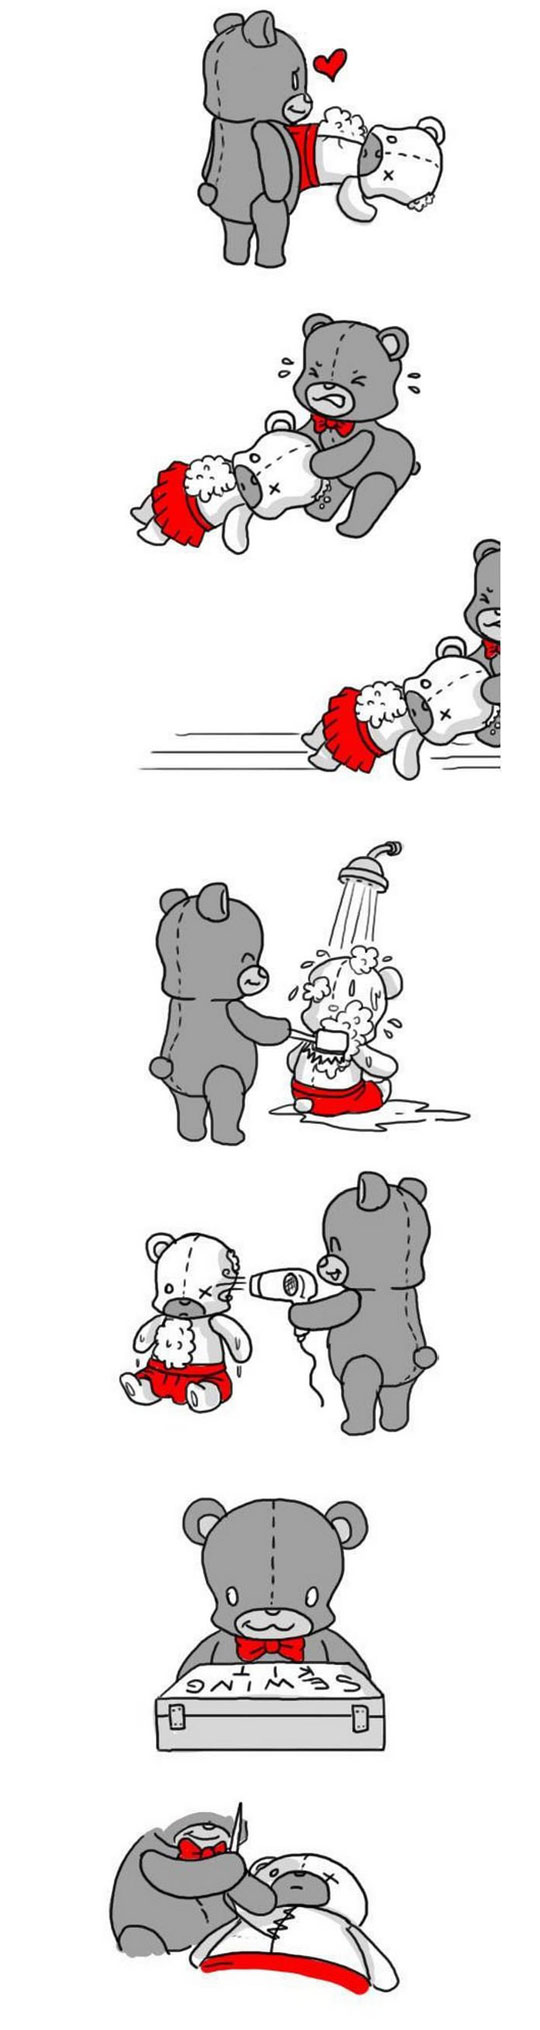 funny-webcomic-bear-fixing-Teddy-pieces-heart-mended